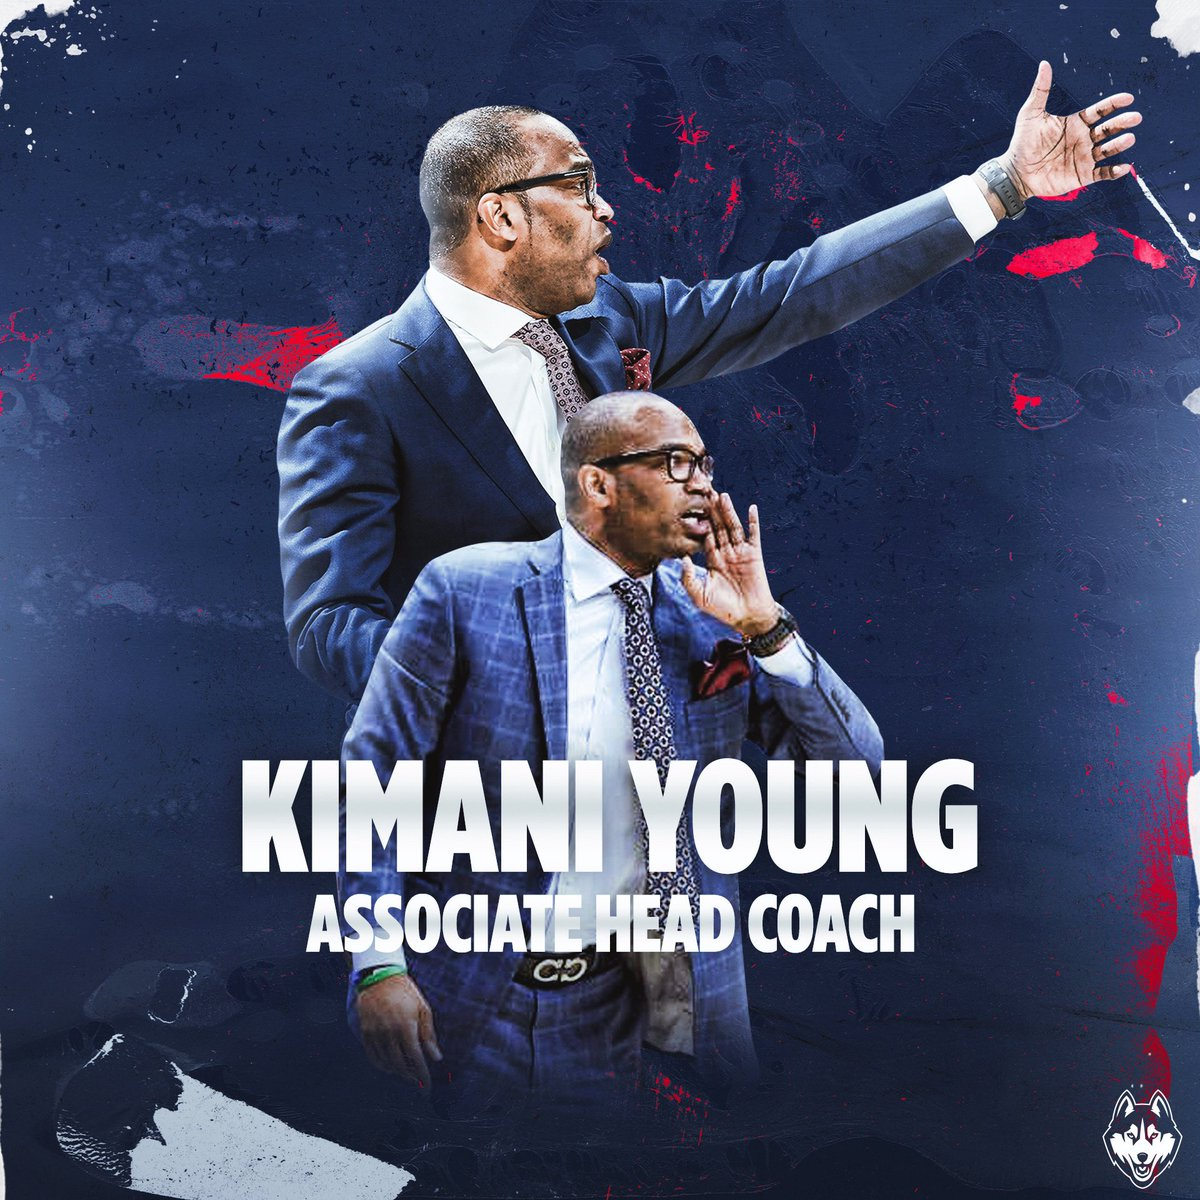 Congratulations to @CoachKimani on his promotion to 𝐀𝐬𝐬𝐨𝐜𝐢𝐚𝐭𝐞 𝐇𝐞𝐚𝐝 𝐂𝐨𝐚𝐜𝐡. Well deserved‼️⁣ #ThisIsUConn